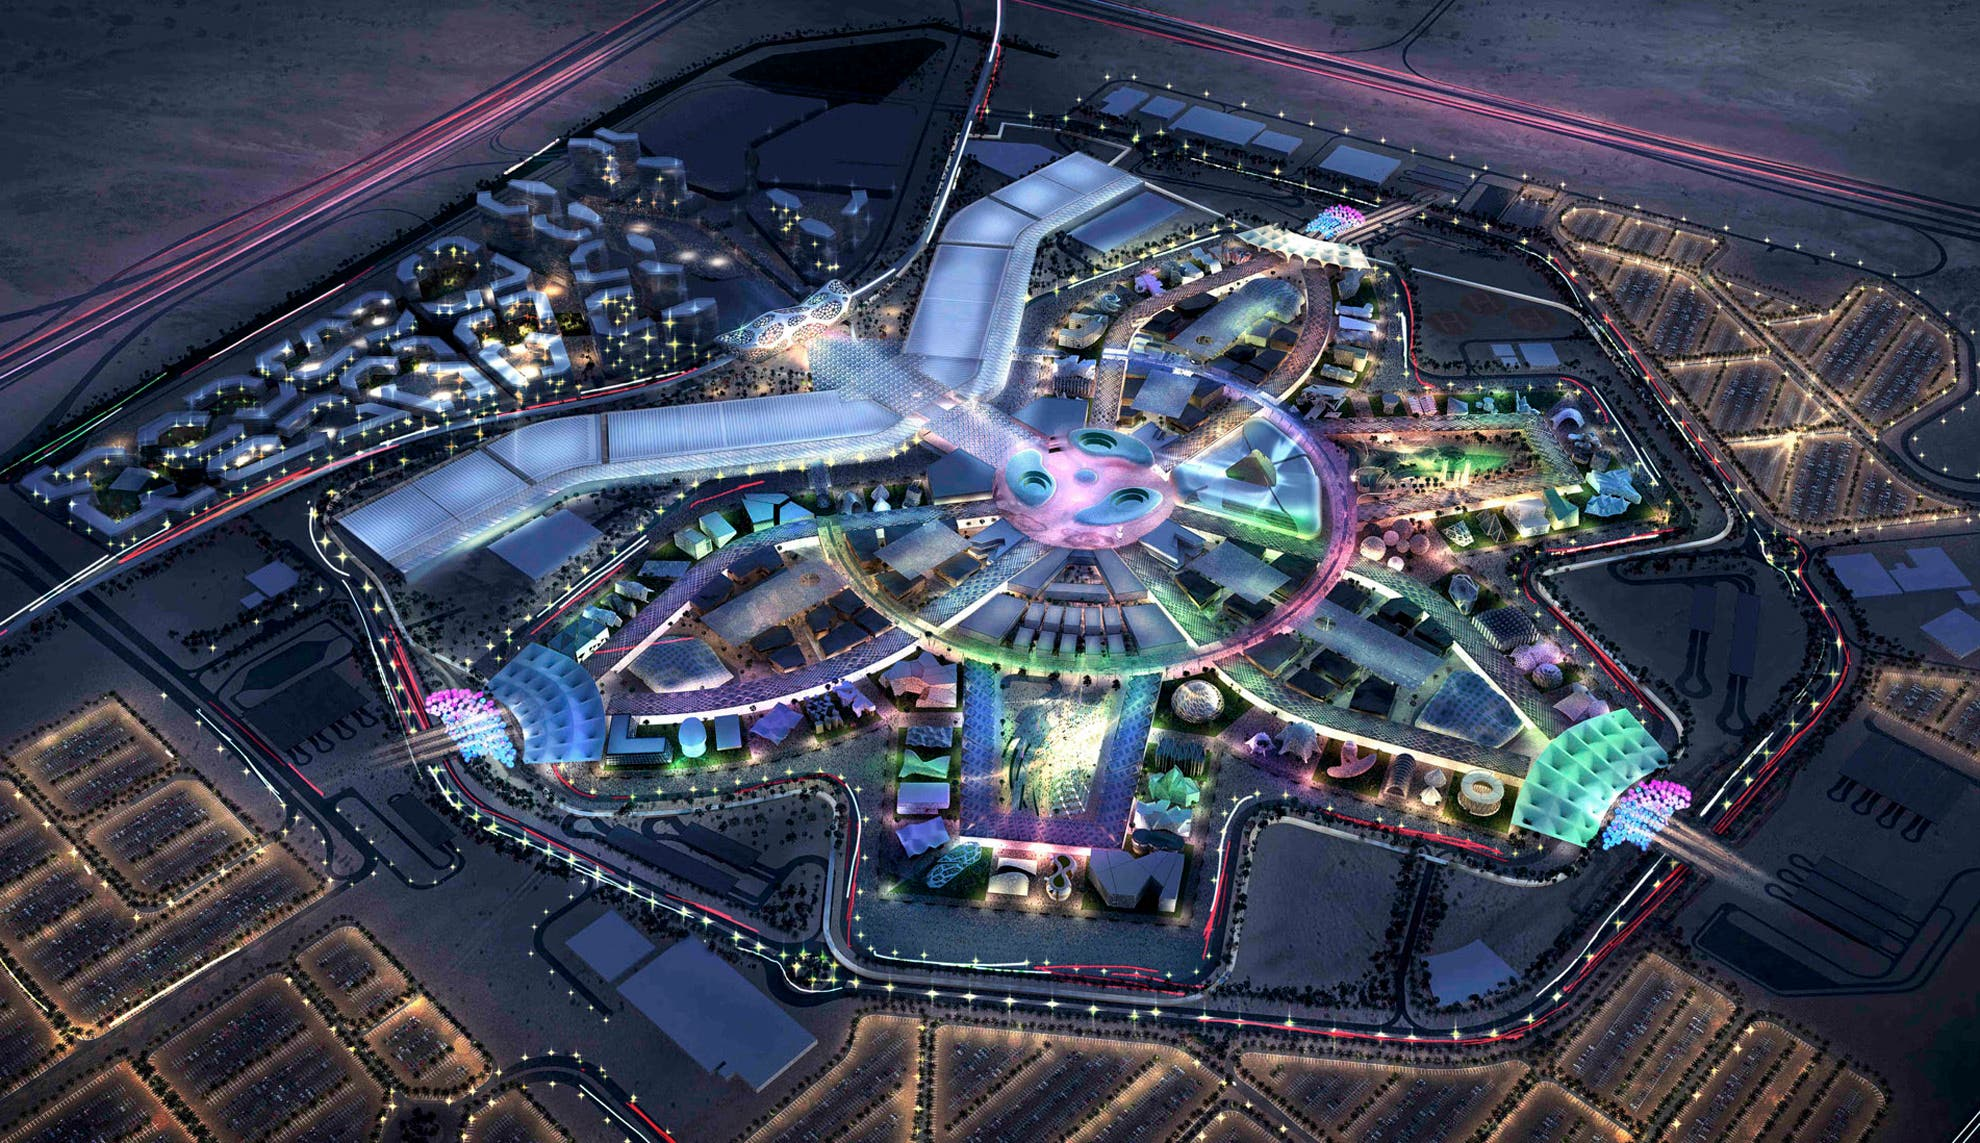 A concept image of the EXPO 2020 site released on November 13, 2018. (AP)